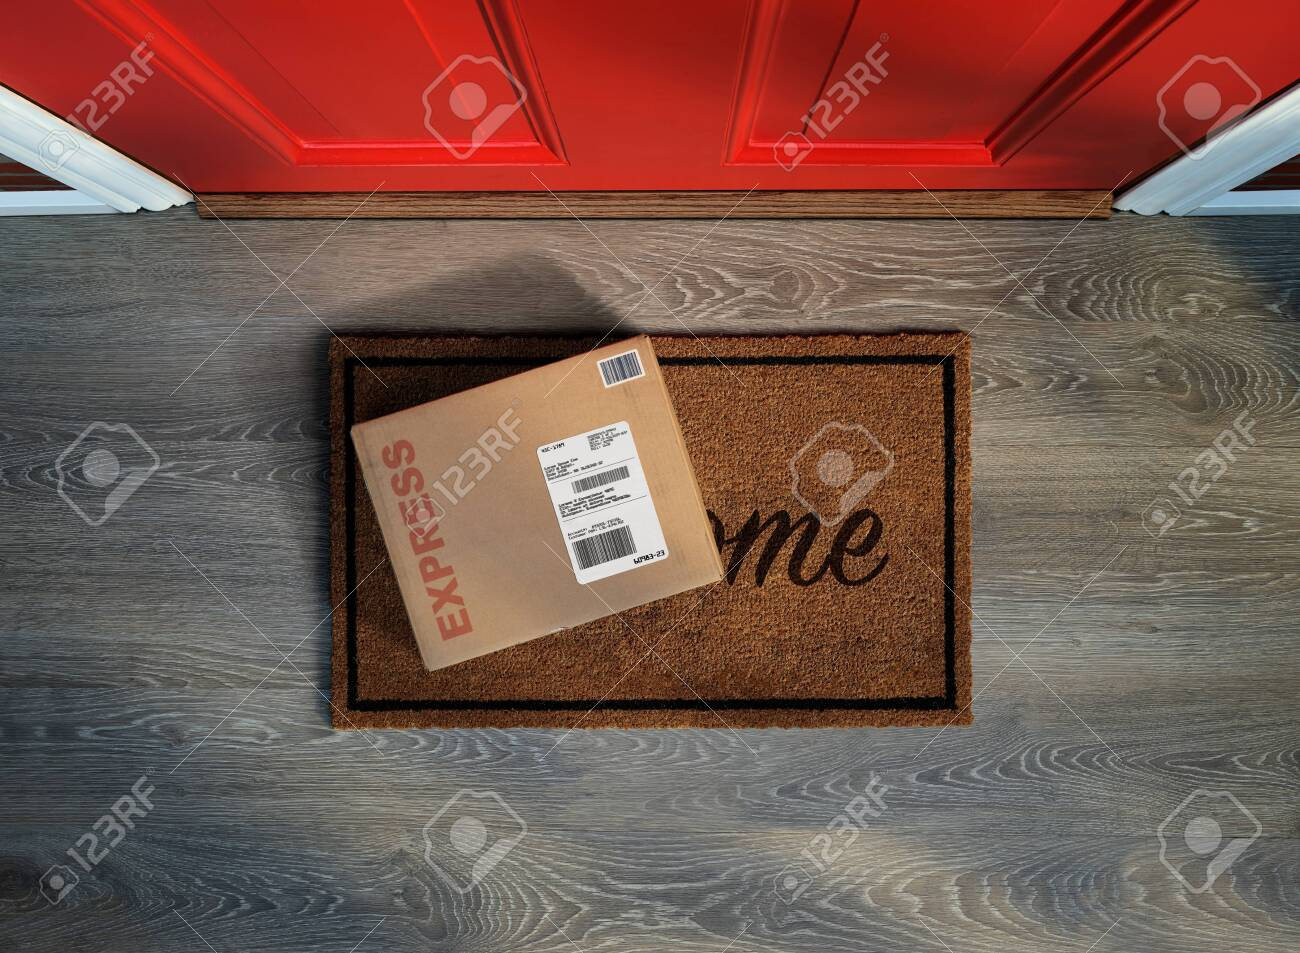 Rush delivery, online purchase outside the front door. Overhead view. - 128872814